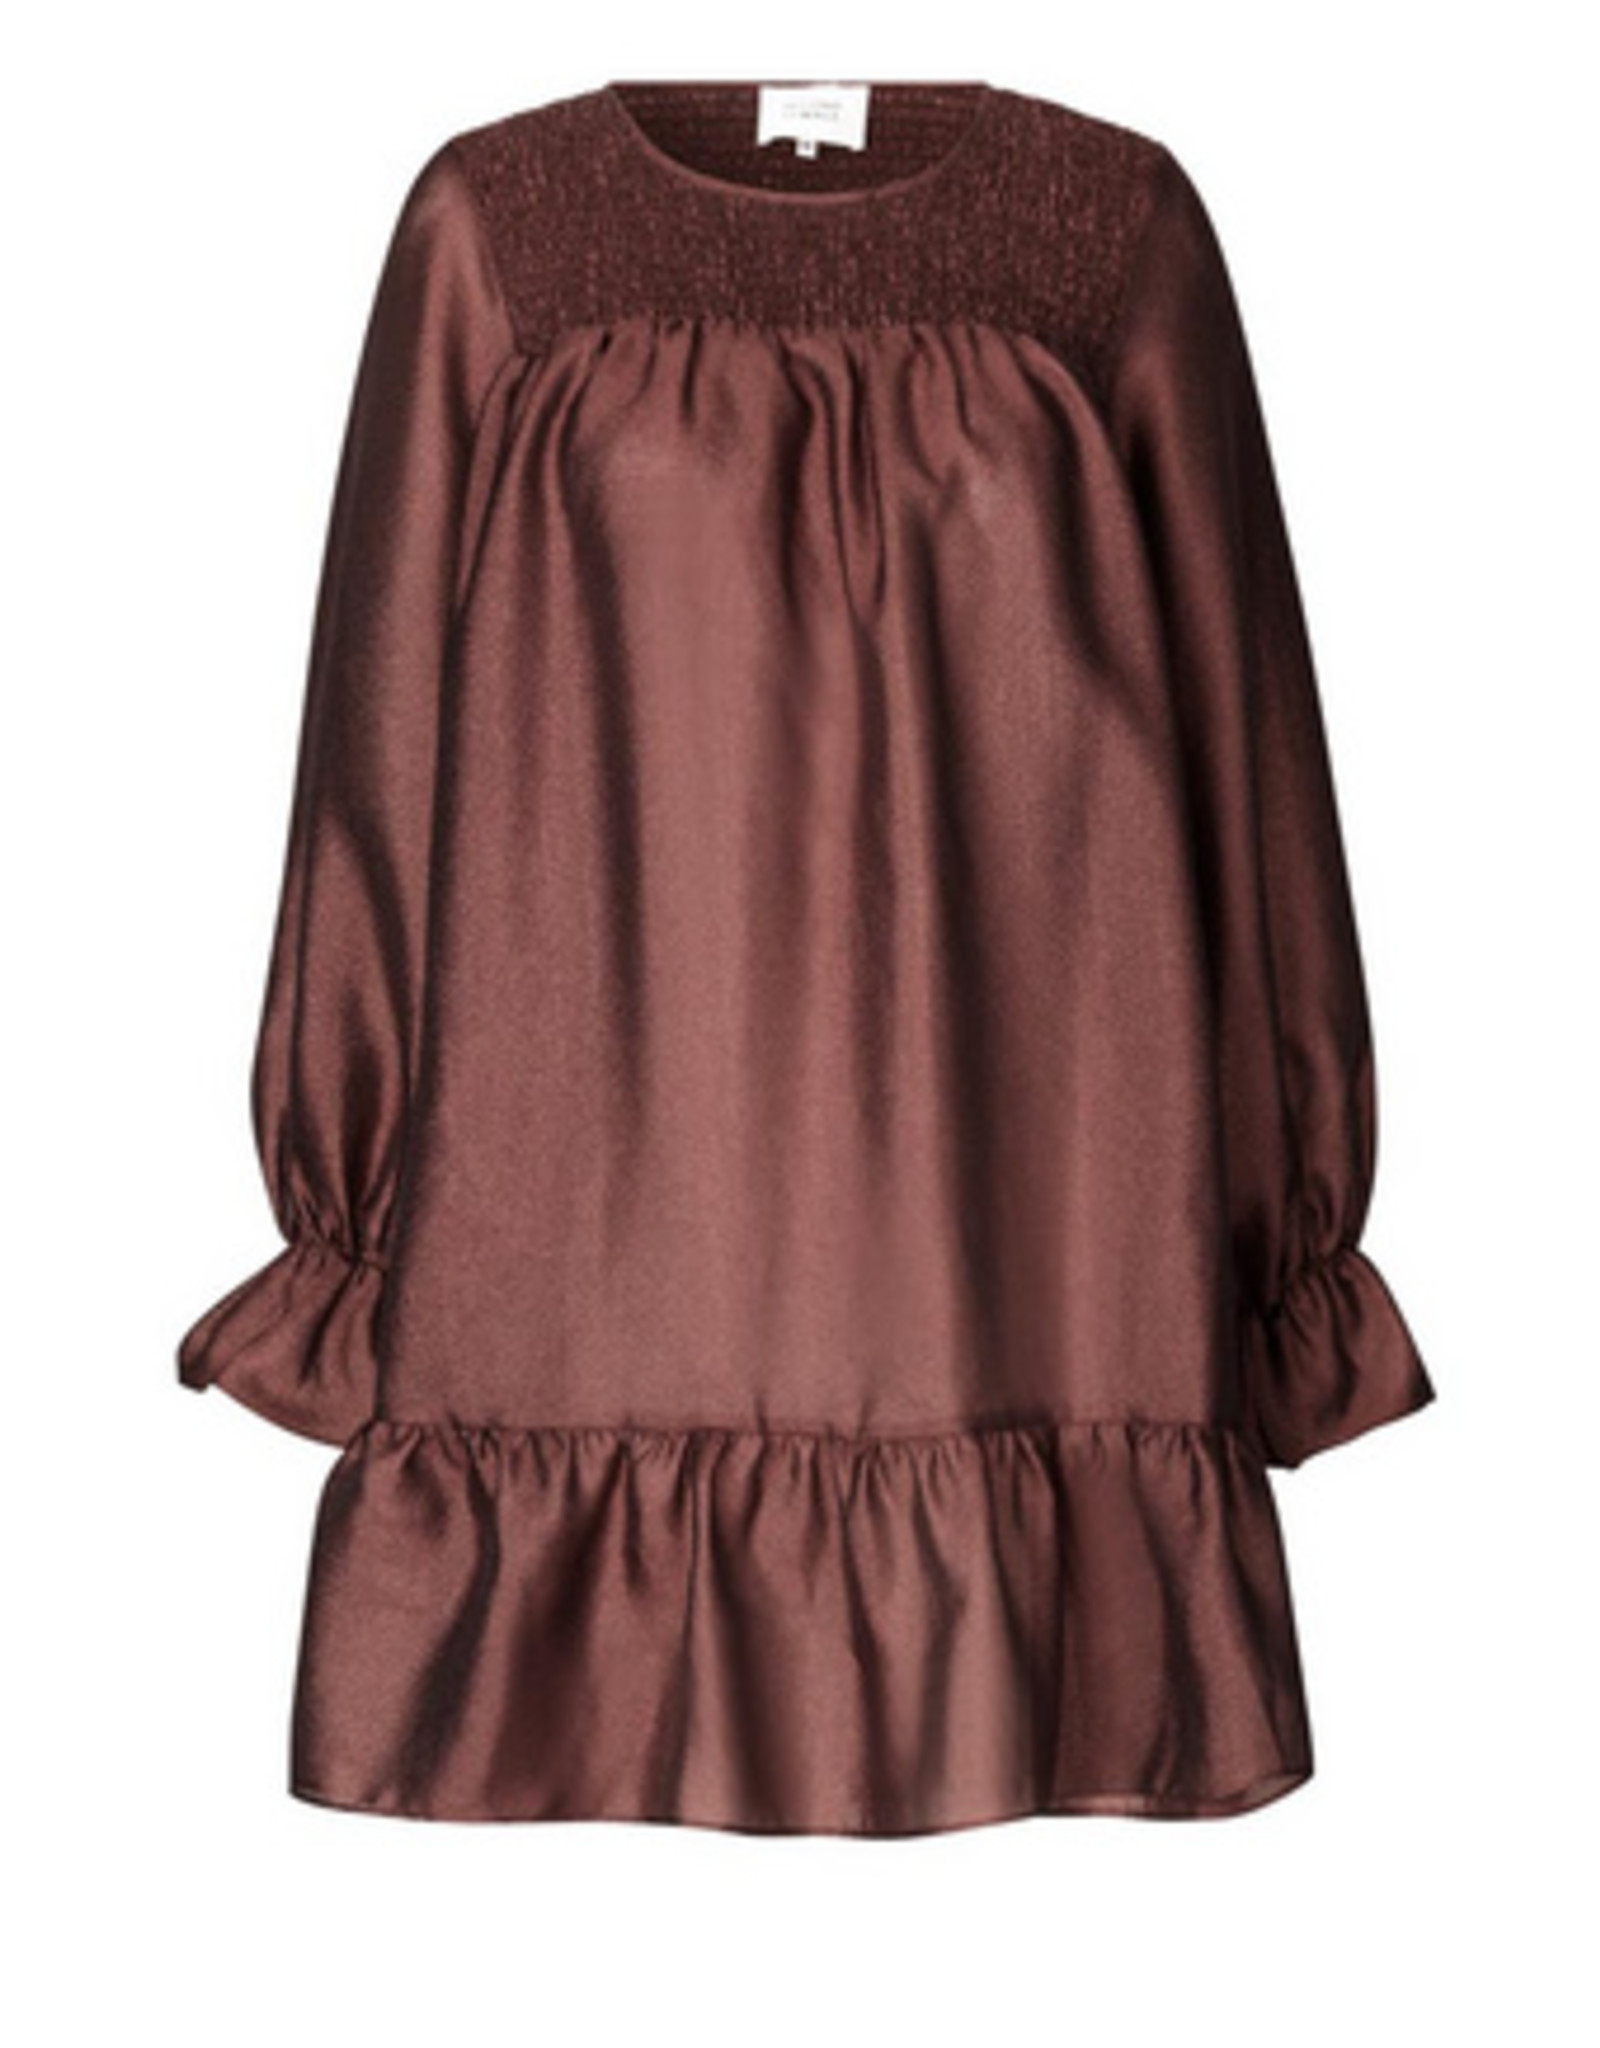 DRESS WITH SMOCK